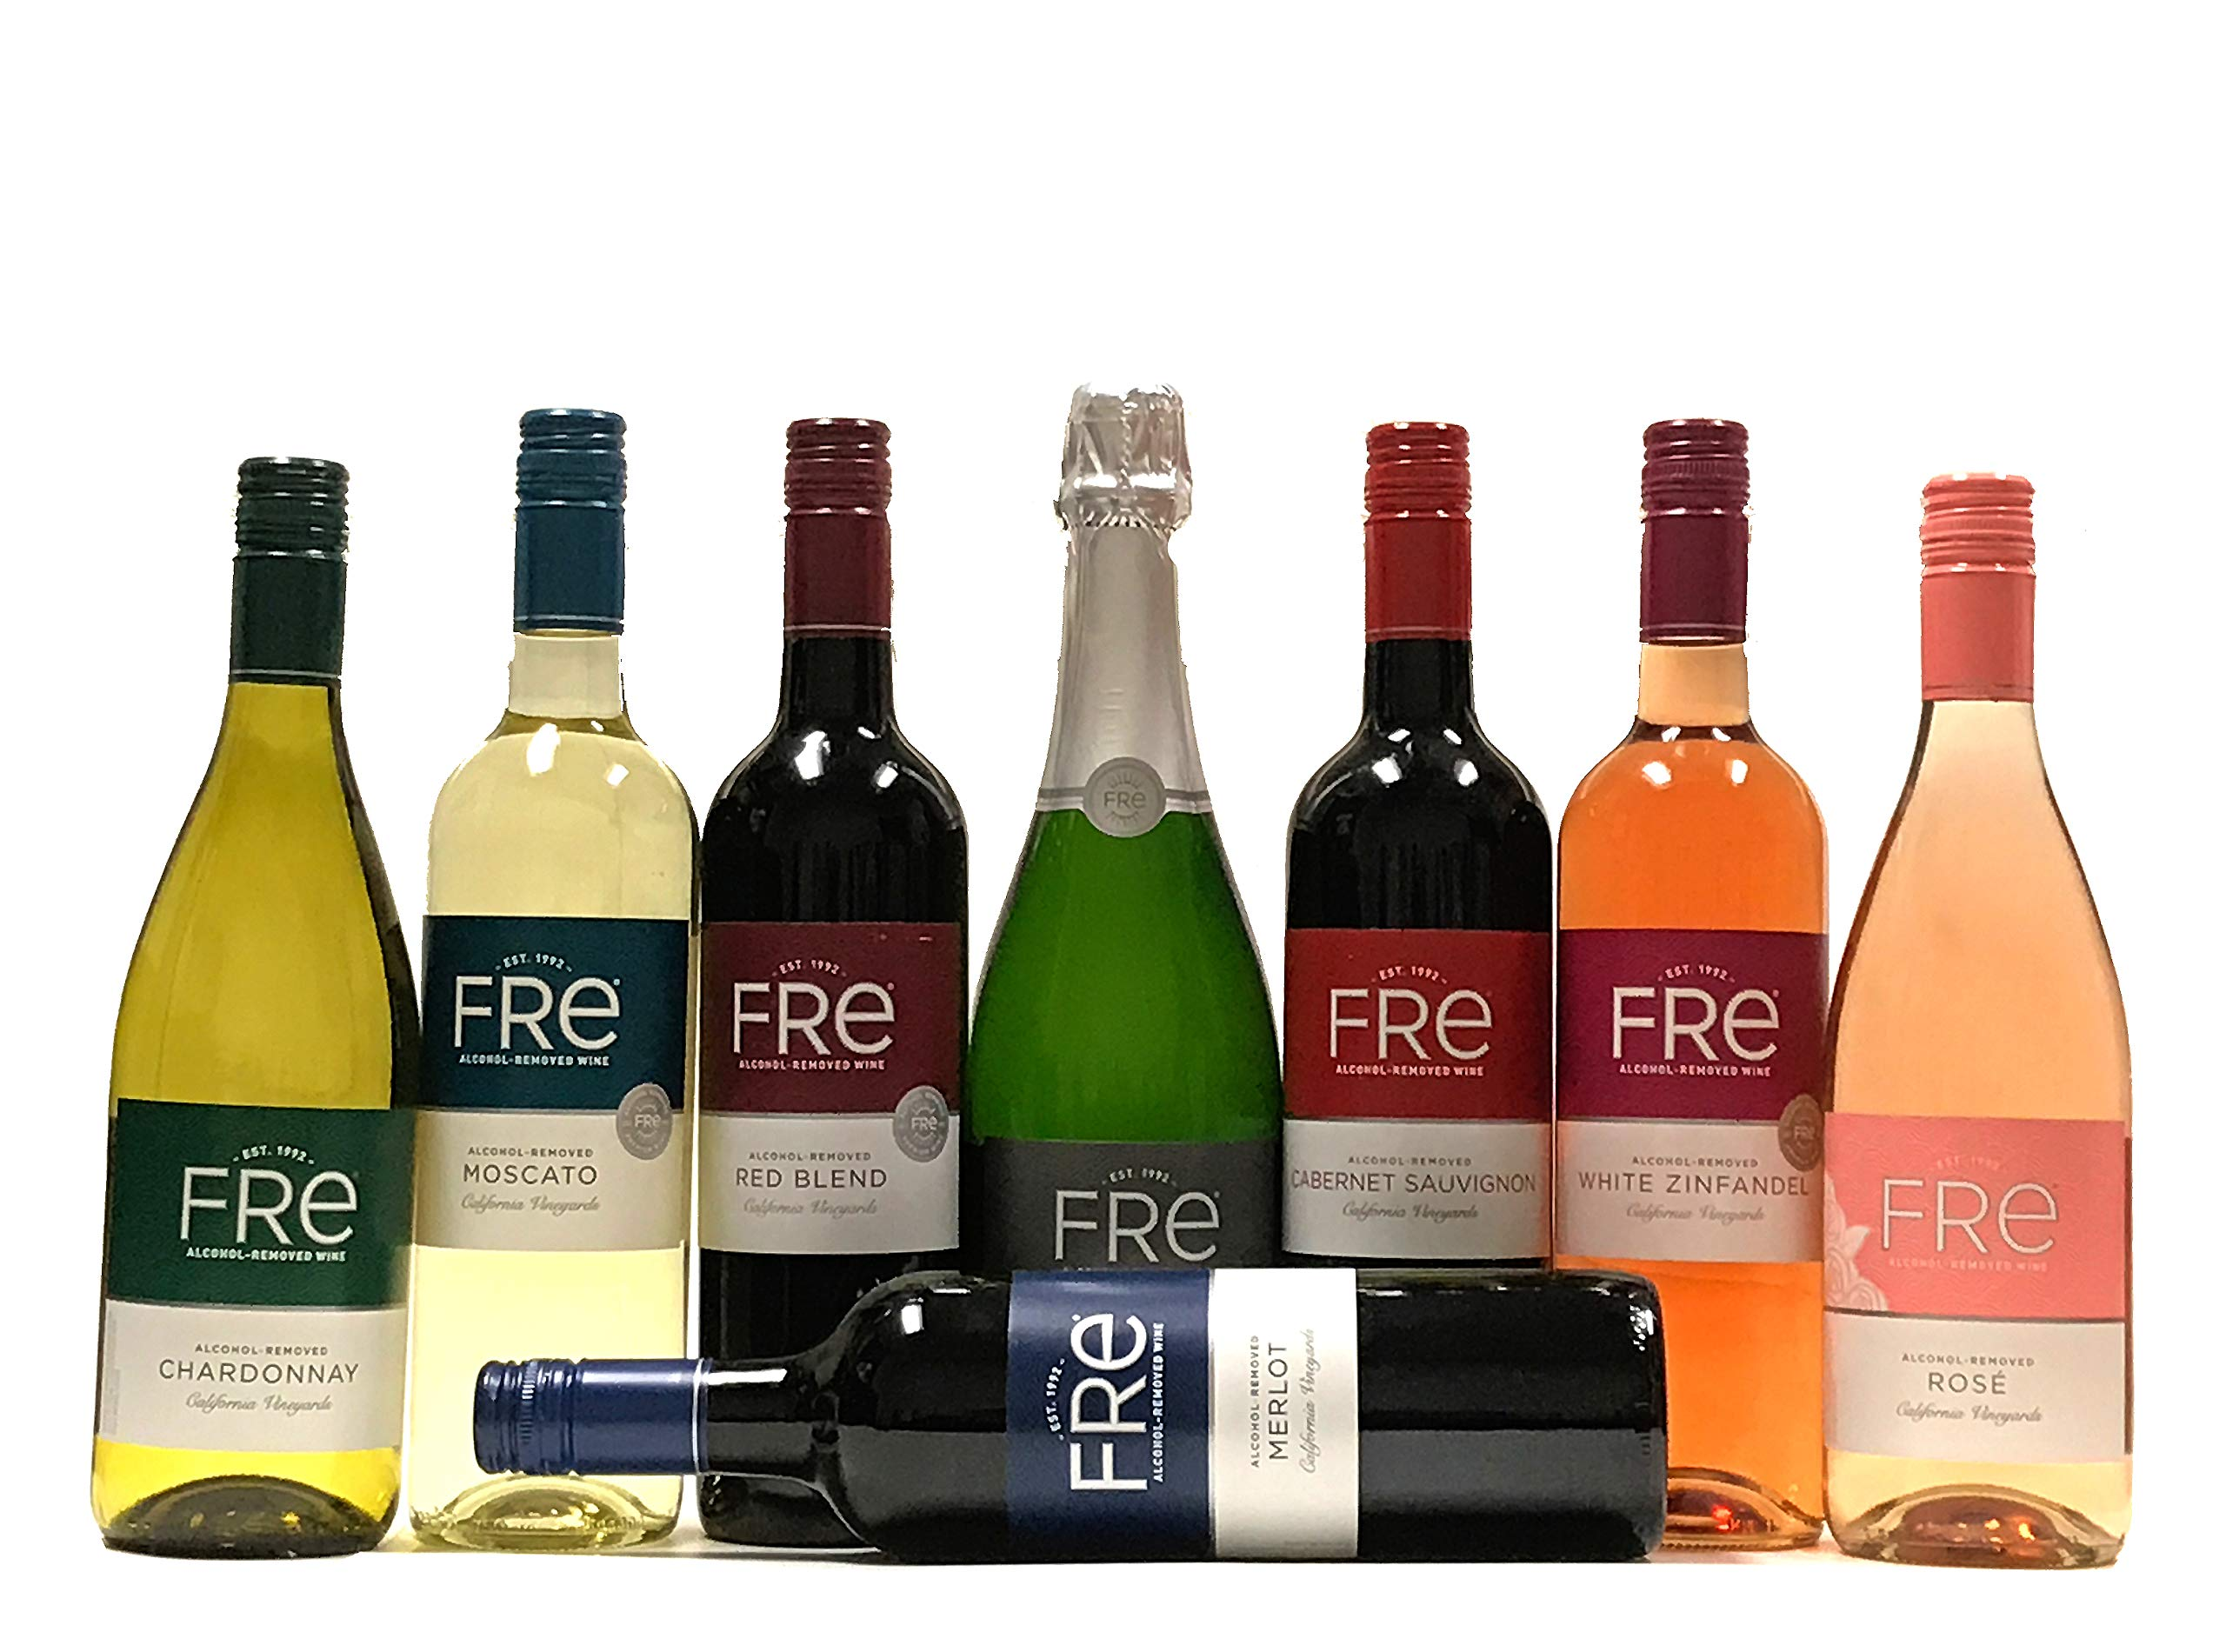 Sutter Home FRE Premium N/A Wine - 8 Bottle Non-Alcoholic Variety Pack Collection by FRE